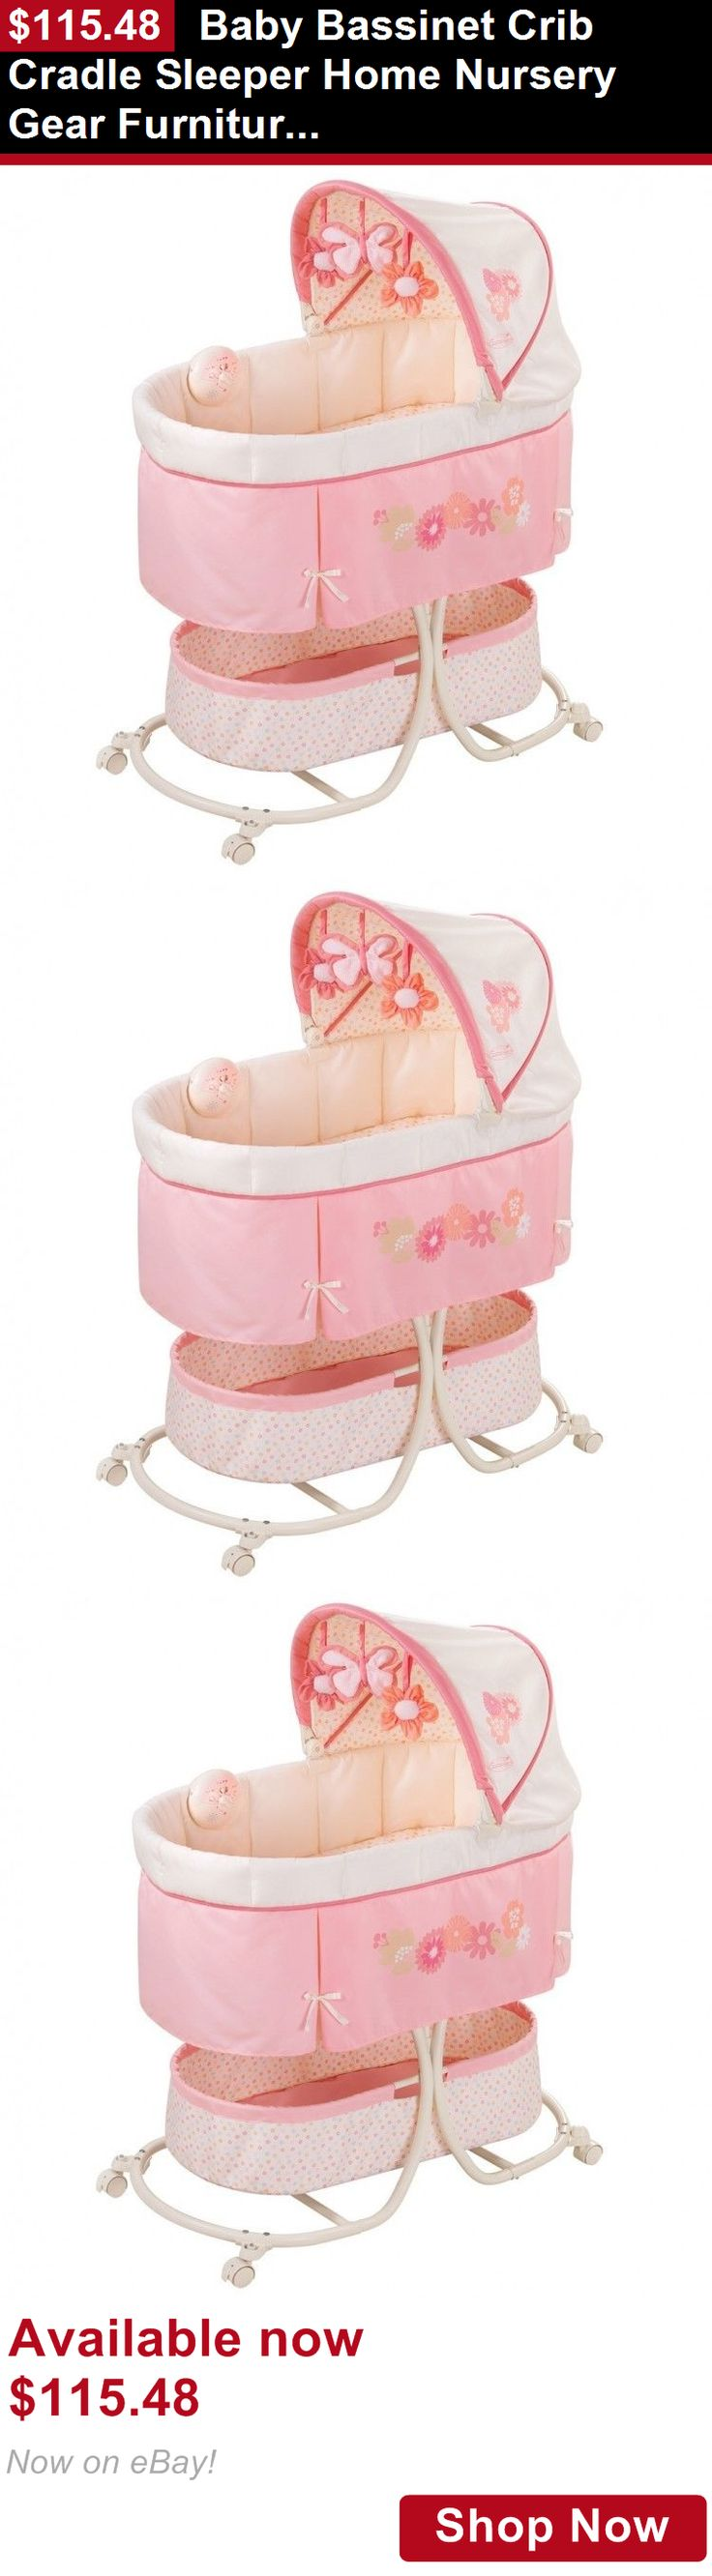 Baby bed ebay india - Bassinets And Cradles Baby Bassinet Crib Cradle Sleeper Home Nursery Gear Furniture Infant Beds Buy